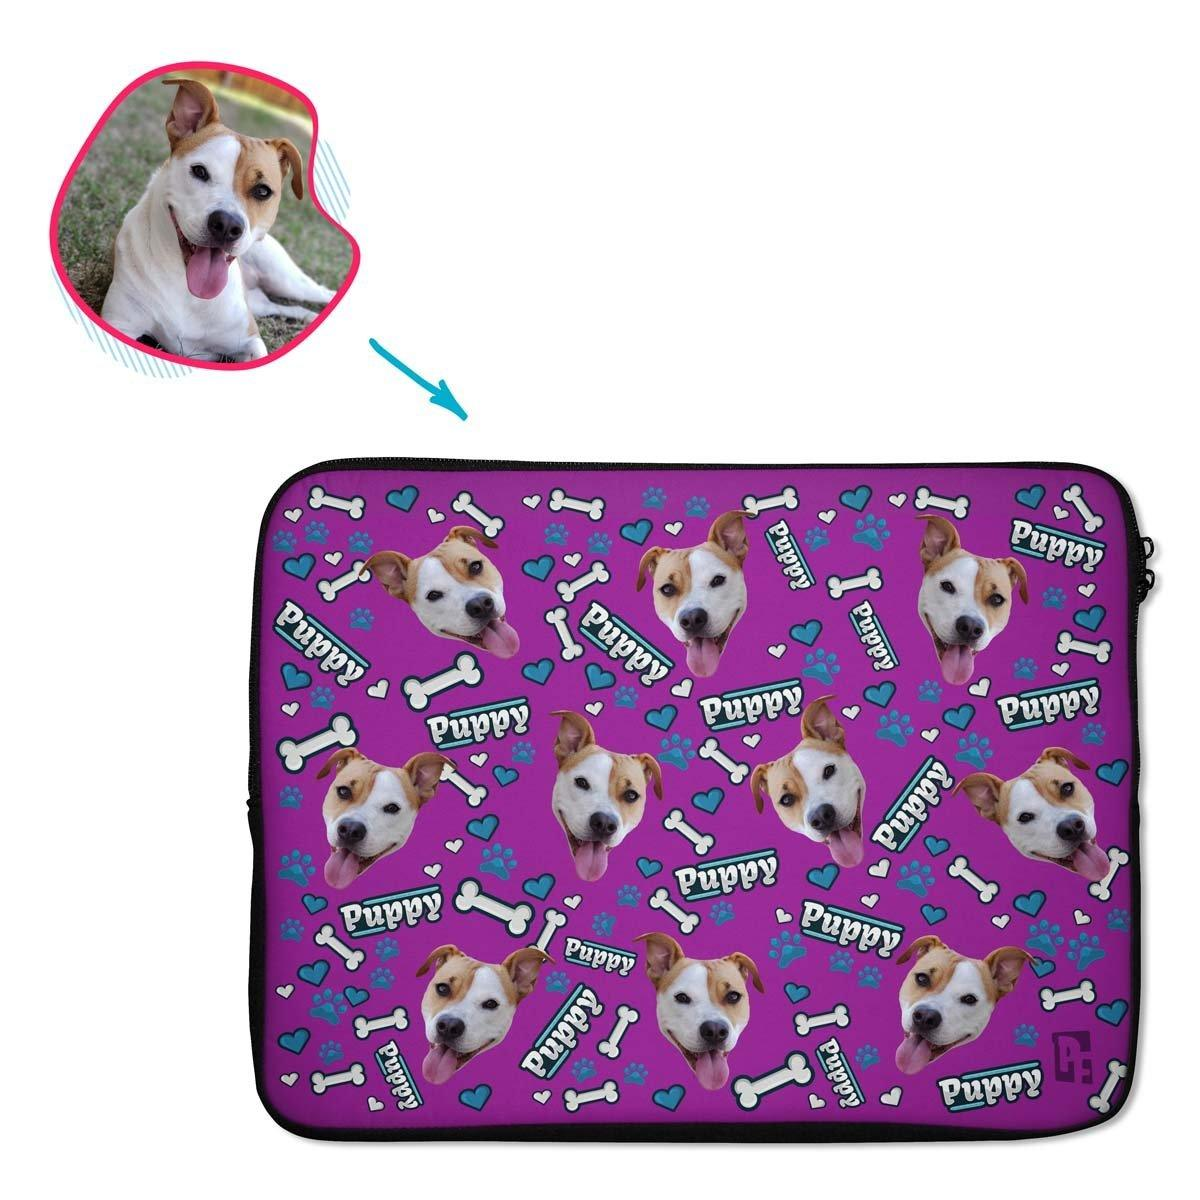 purple Puppy laptop sleeve personalized with photo of face printed on them